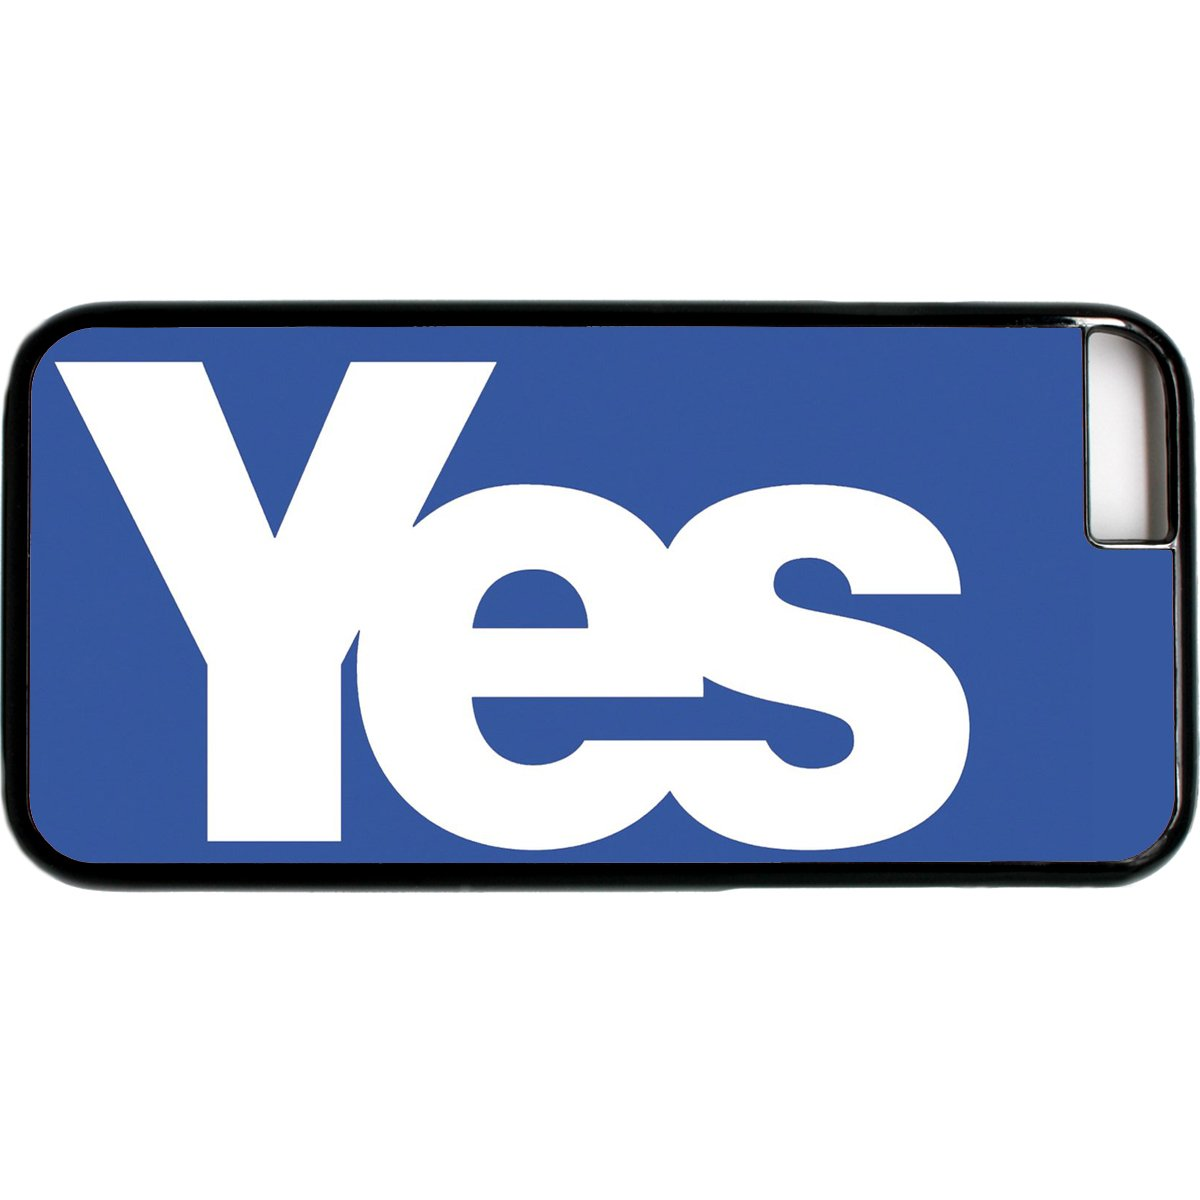 YES Scotland votazione-Custodia per iPhone 6, indipendente Scozia SNP 2014